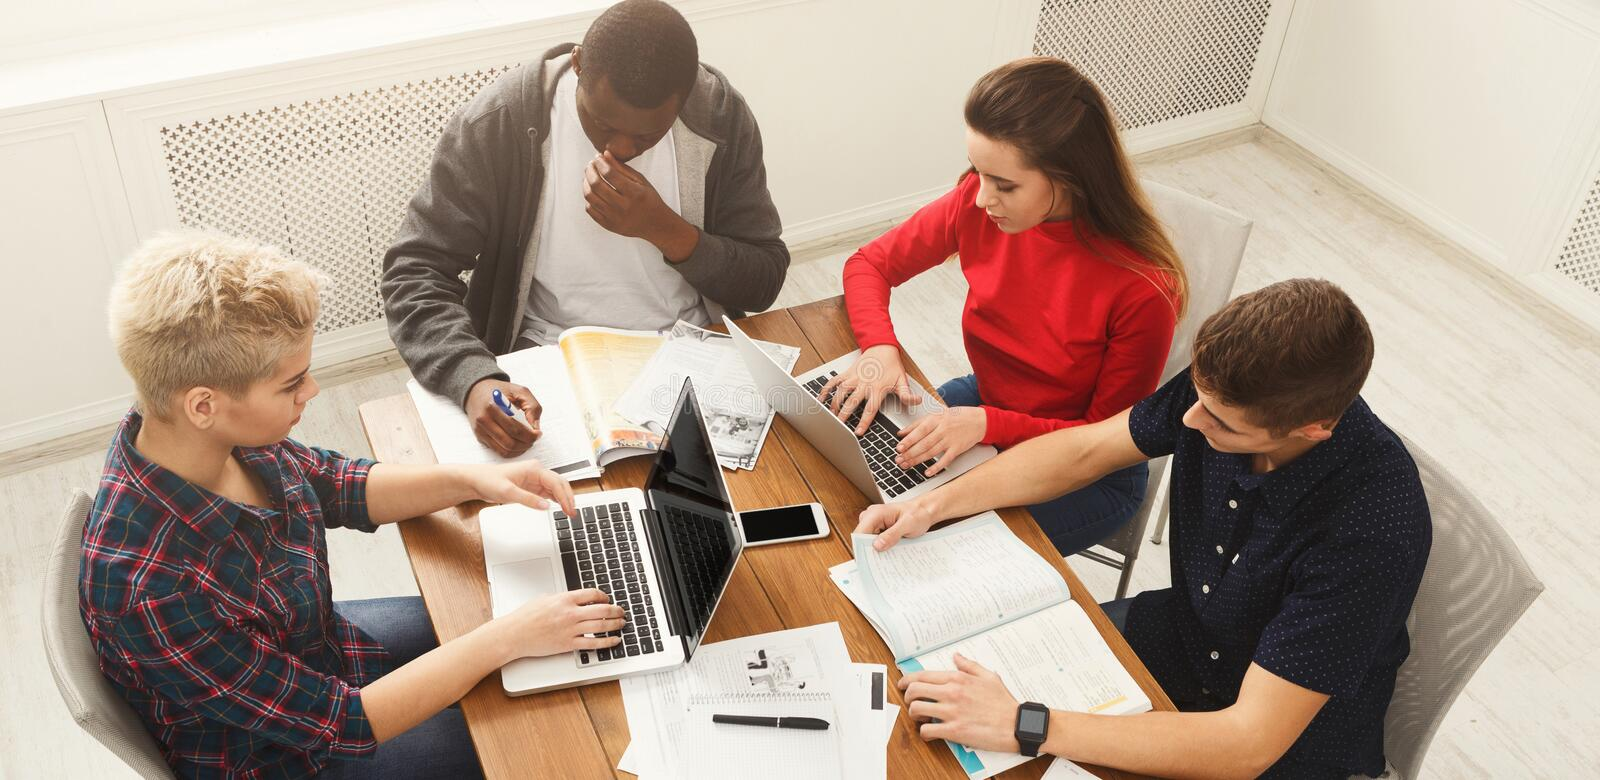 Group of diverse students studying at wooden table stock images